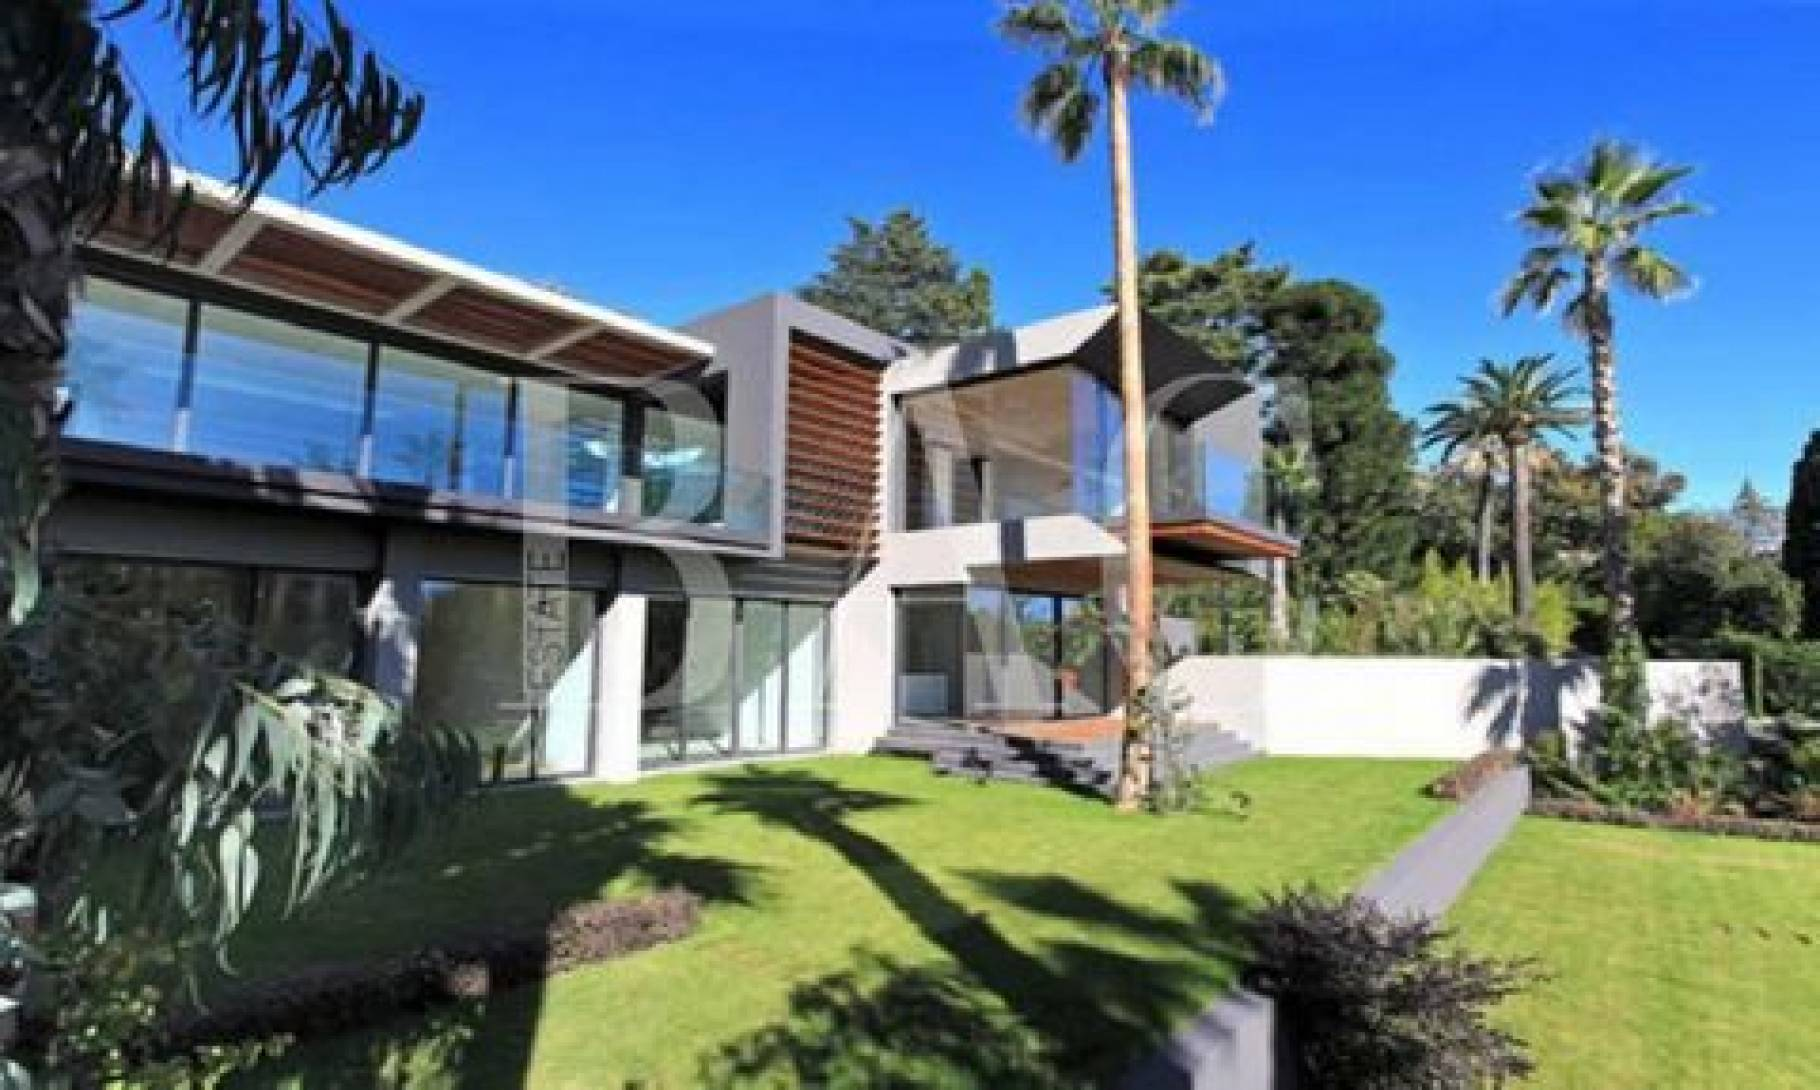 France Provence-Alpes-Cote d'Azur Cannes 06400, 5 Bedrooms Bedrooms, ,Villa,For sale,7977